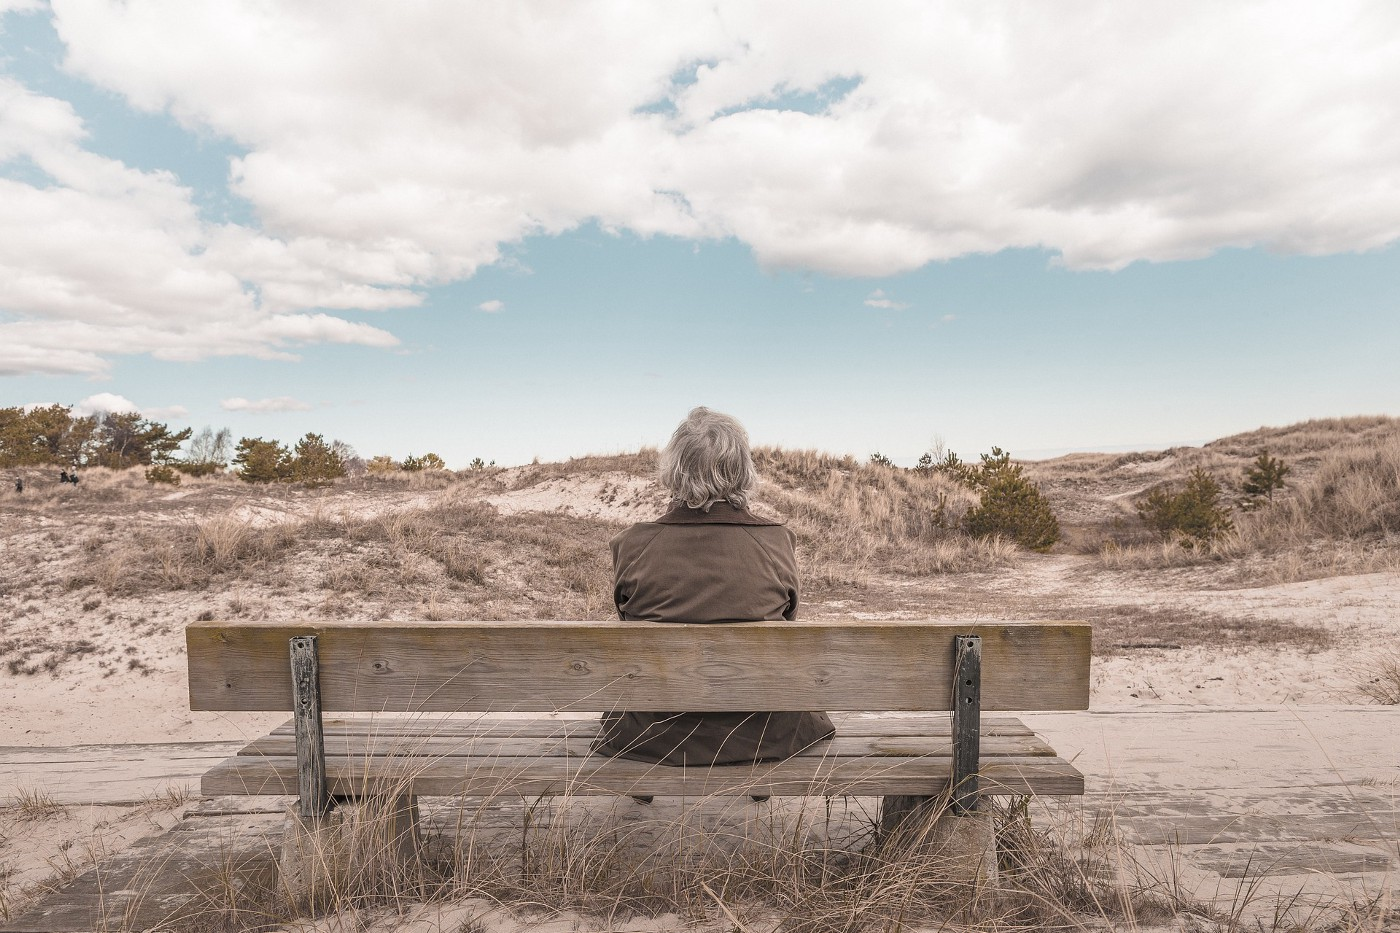 Person with grey hair and brown jacket sitting on a bench facing away and looking at the horizon.